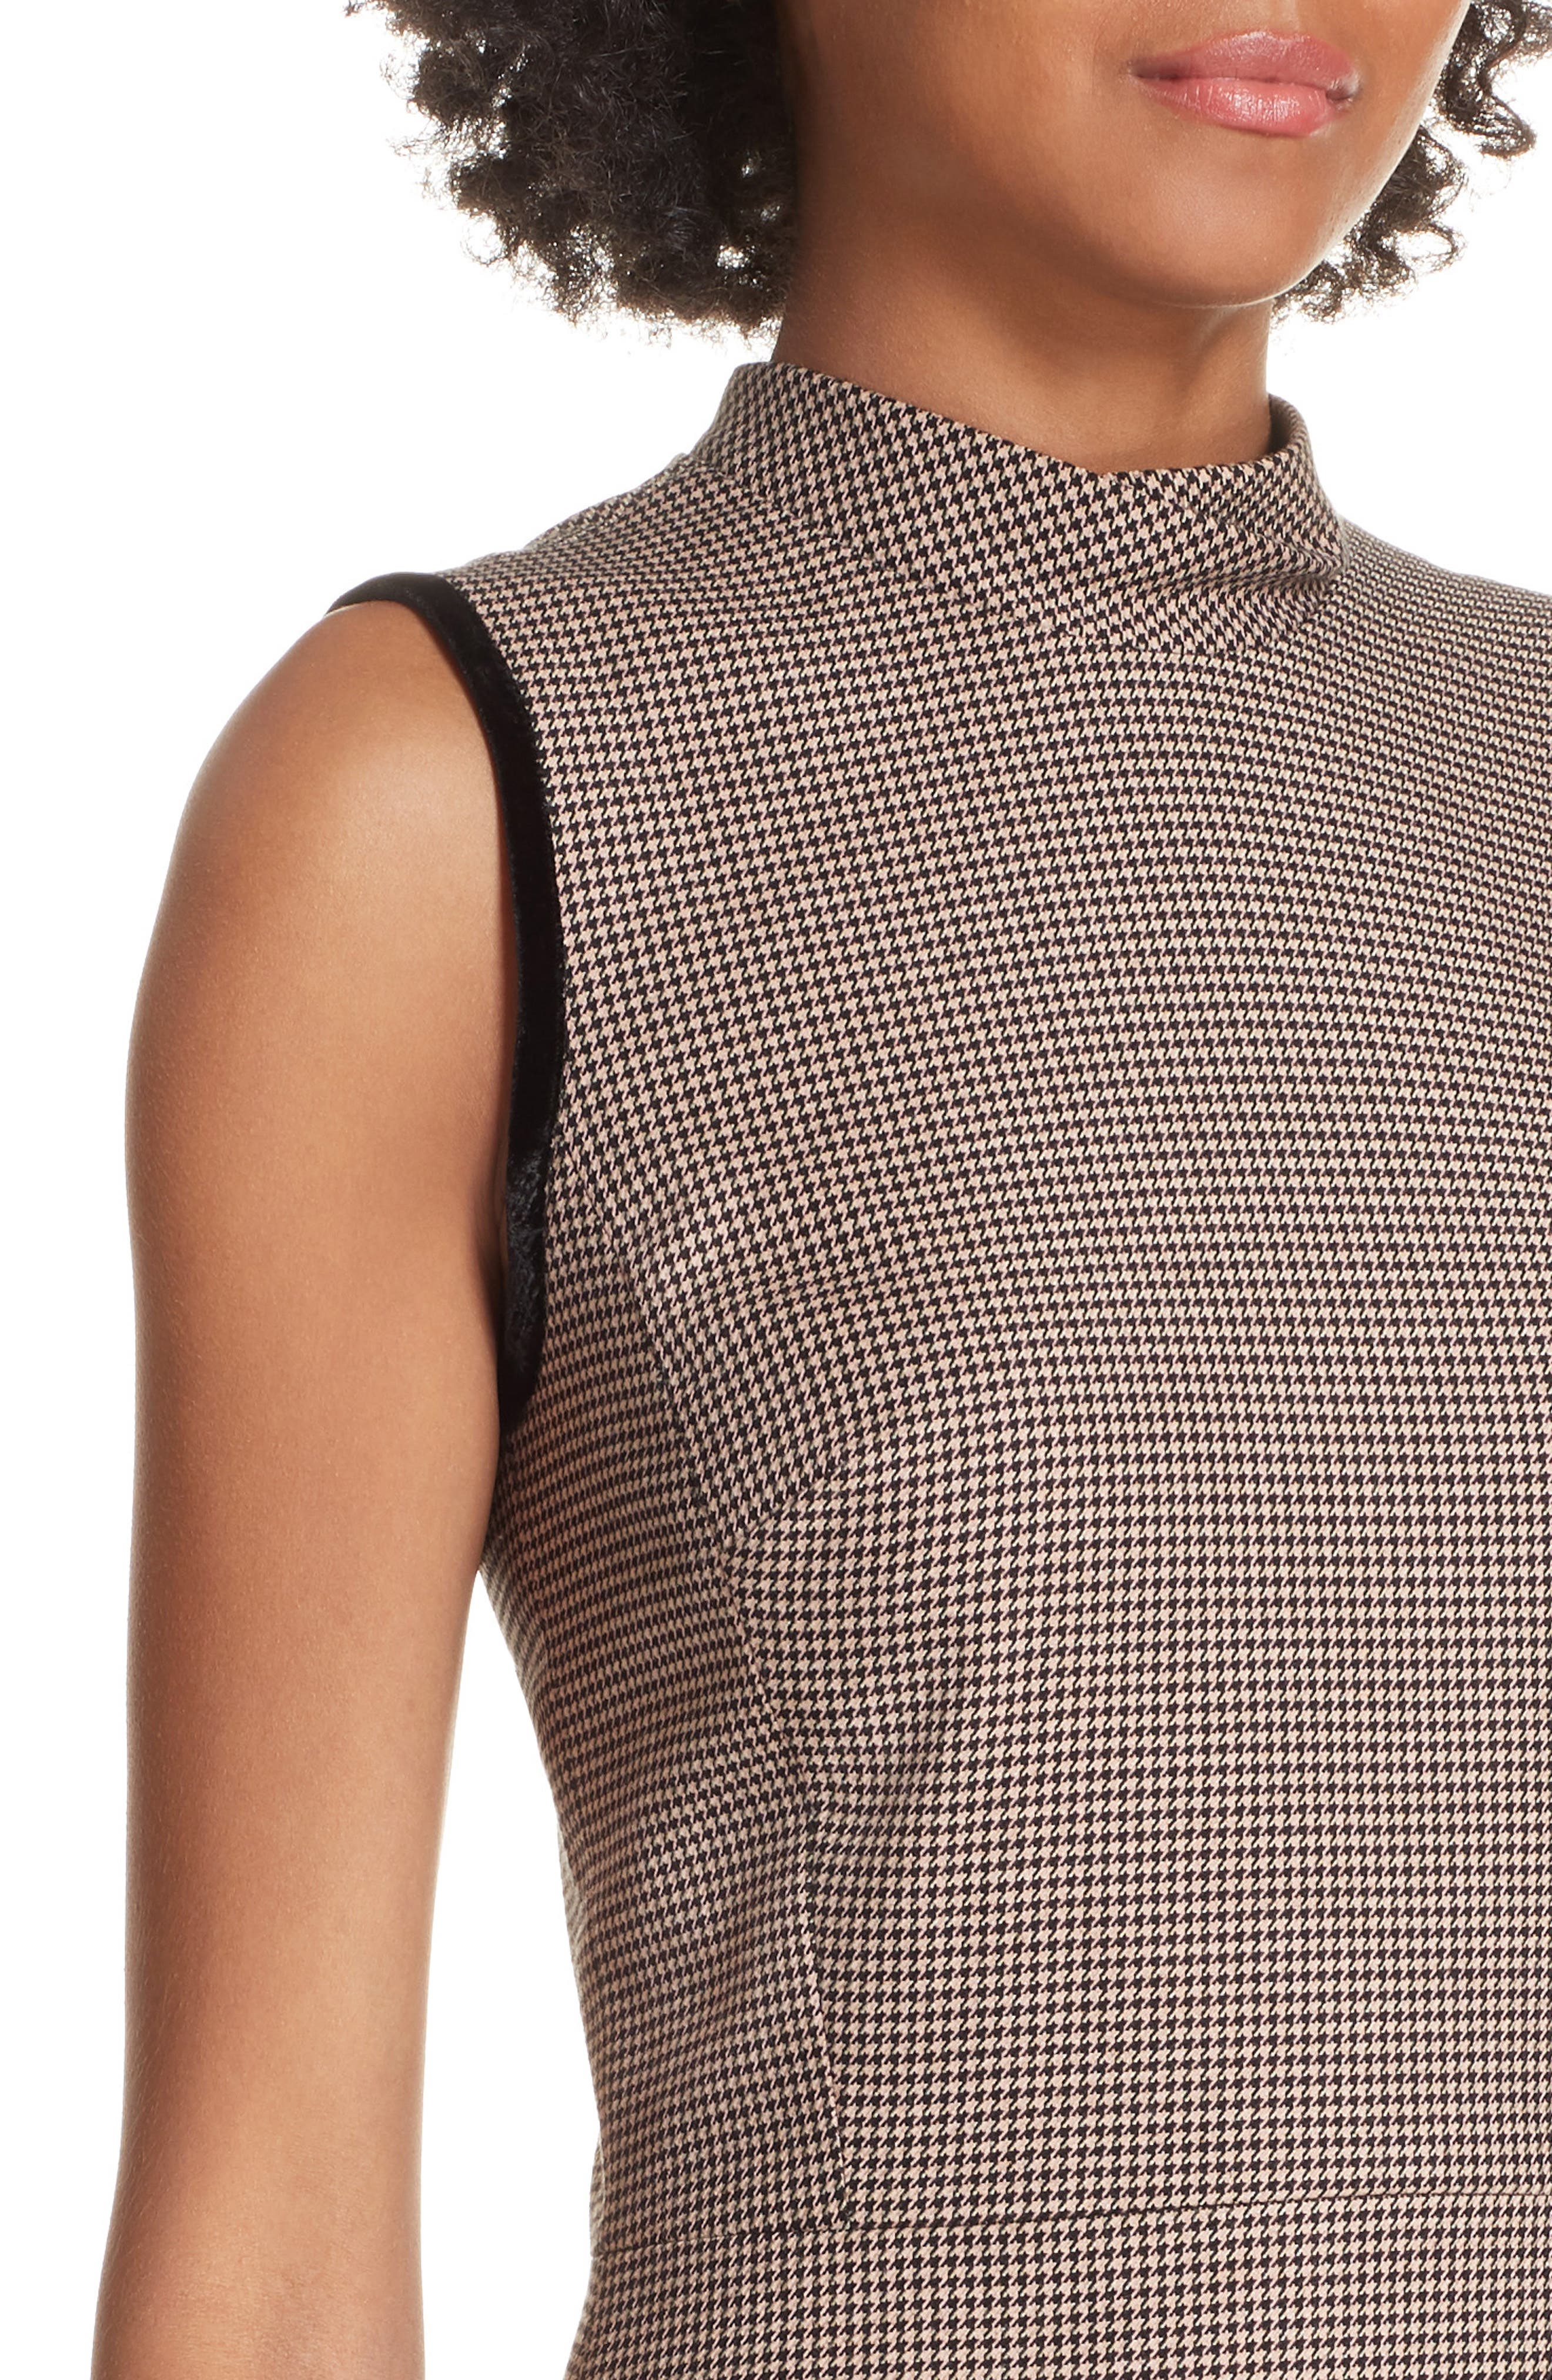 Houndstooth Sheath Dress,                             Alternate thumbnail 4, color,                             215